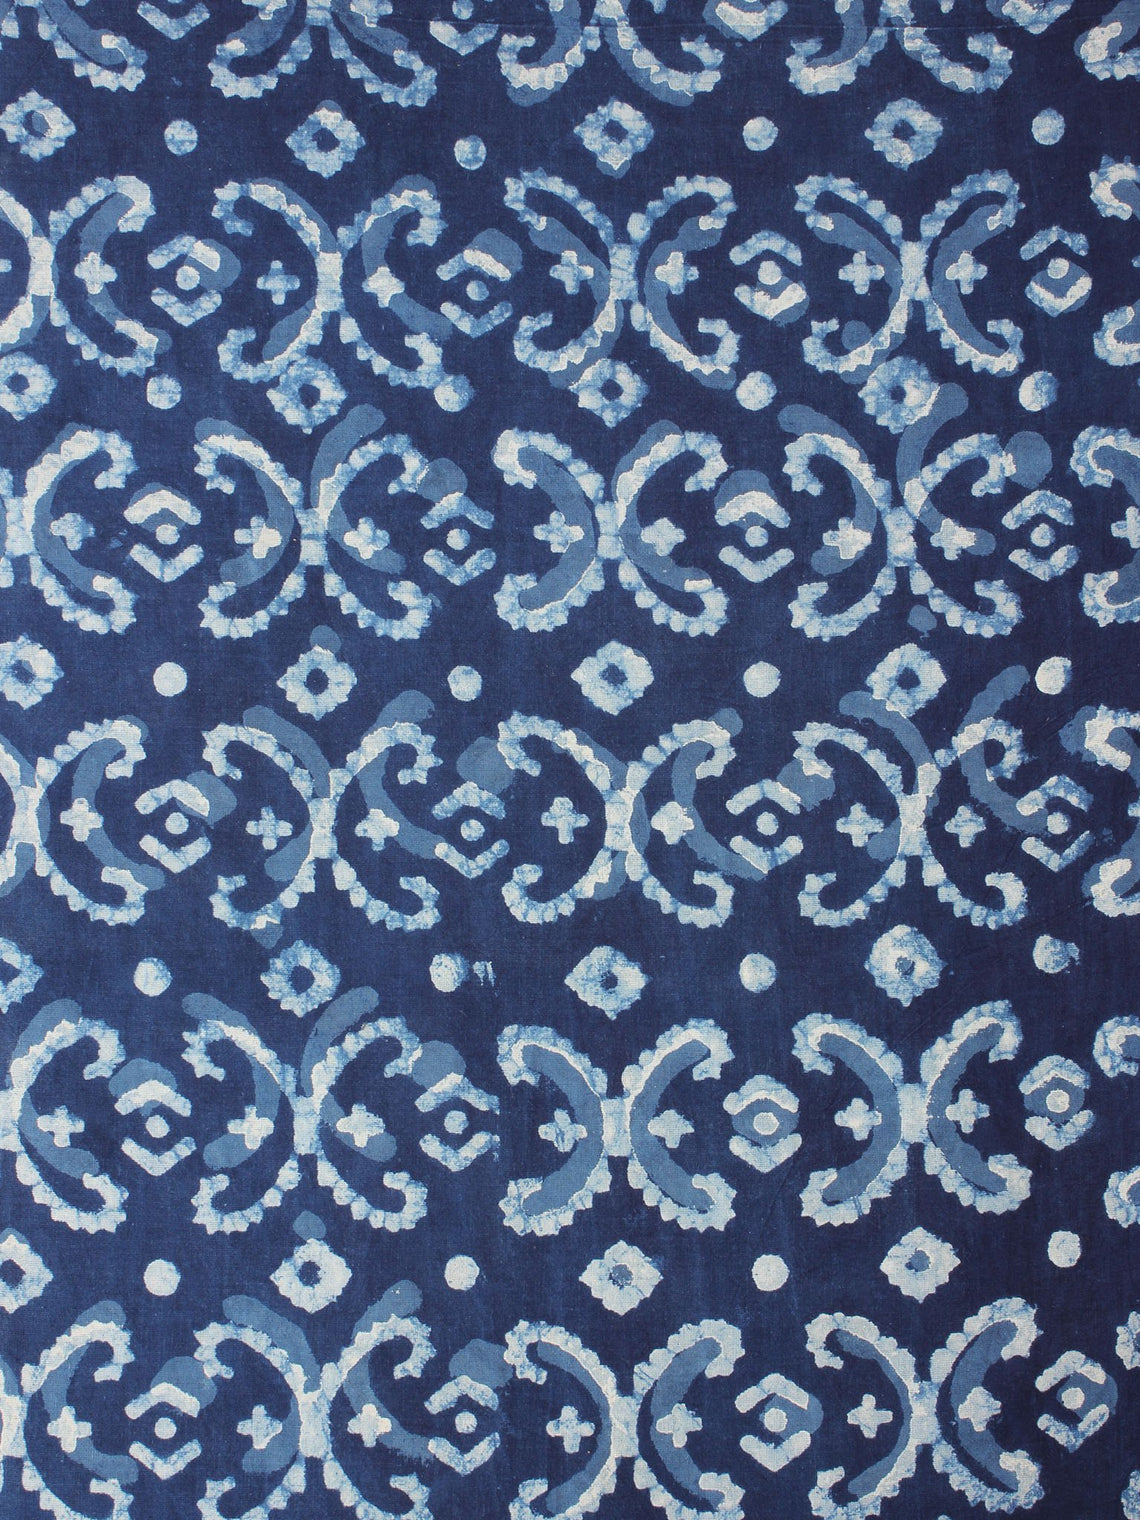 Indigo White Blue Color Natural Dyed Hand Block Printed Cotton Fabric Per Meter - F0916209